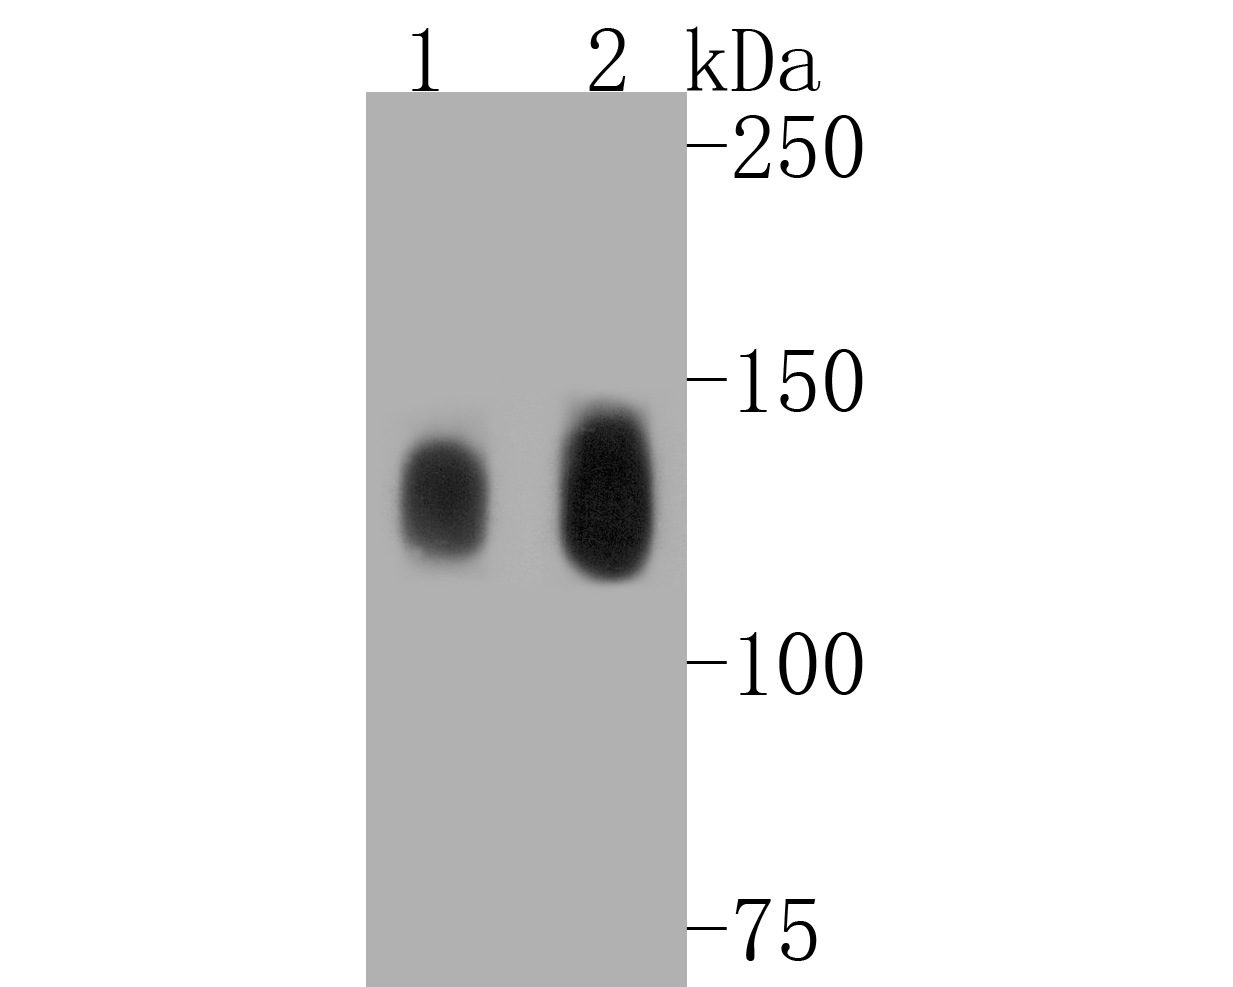 Western blot analysis of Phospho-TrkB(Y817) on different lysates. Proteins were transferred to a PVDF membrane and blocked with 5% BSA in PBS for 1 hour at room temperature. The primary antibody (ET1610-35, 1/500) was used in 5% BSA at room temperature for 2 hours. Goat Anti-Rabbit IgG - HRP Secondary Antibody (HA1001) at 1:5,000 dilution was used for 1 hour at room temperature.<br /> Positive control: <br /> Lane 1: mouse brain tissue lysate<br /> Lane 2: rat brain tissue lysate